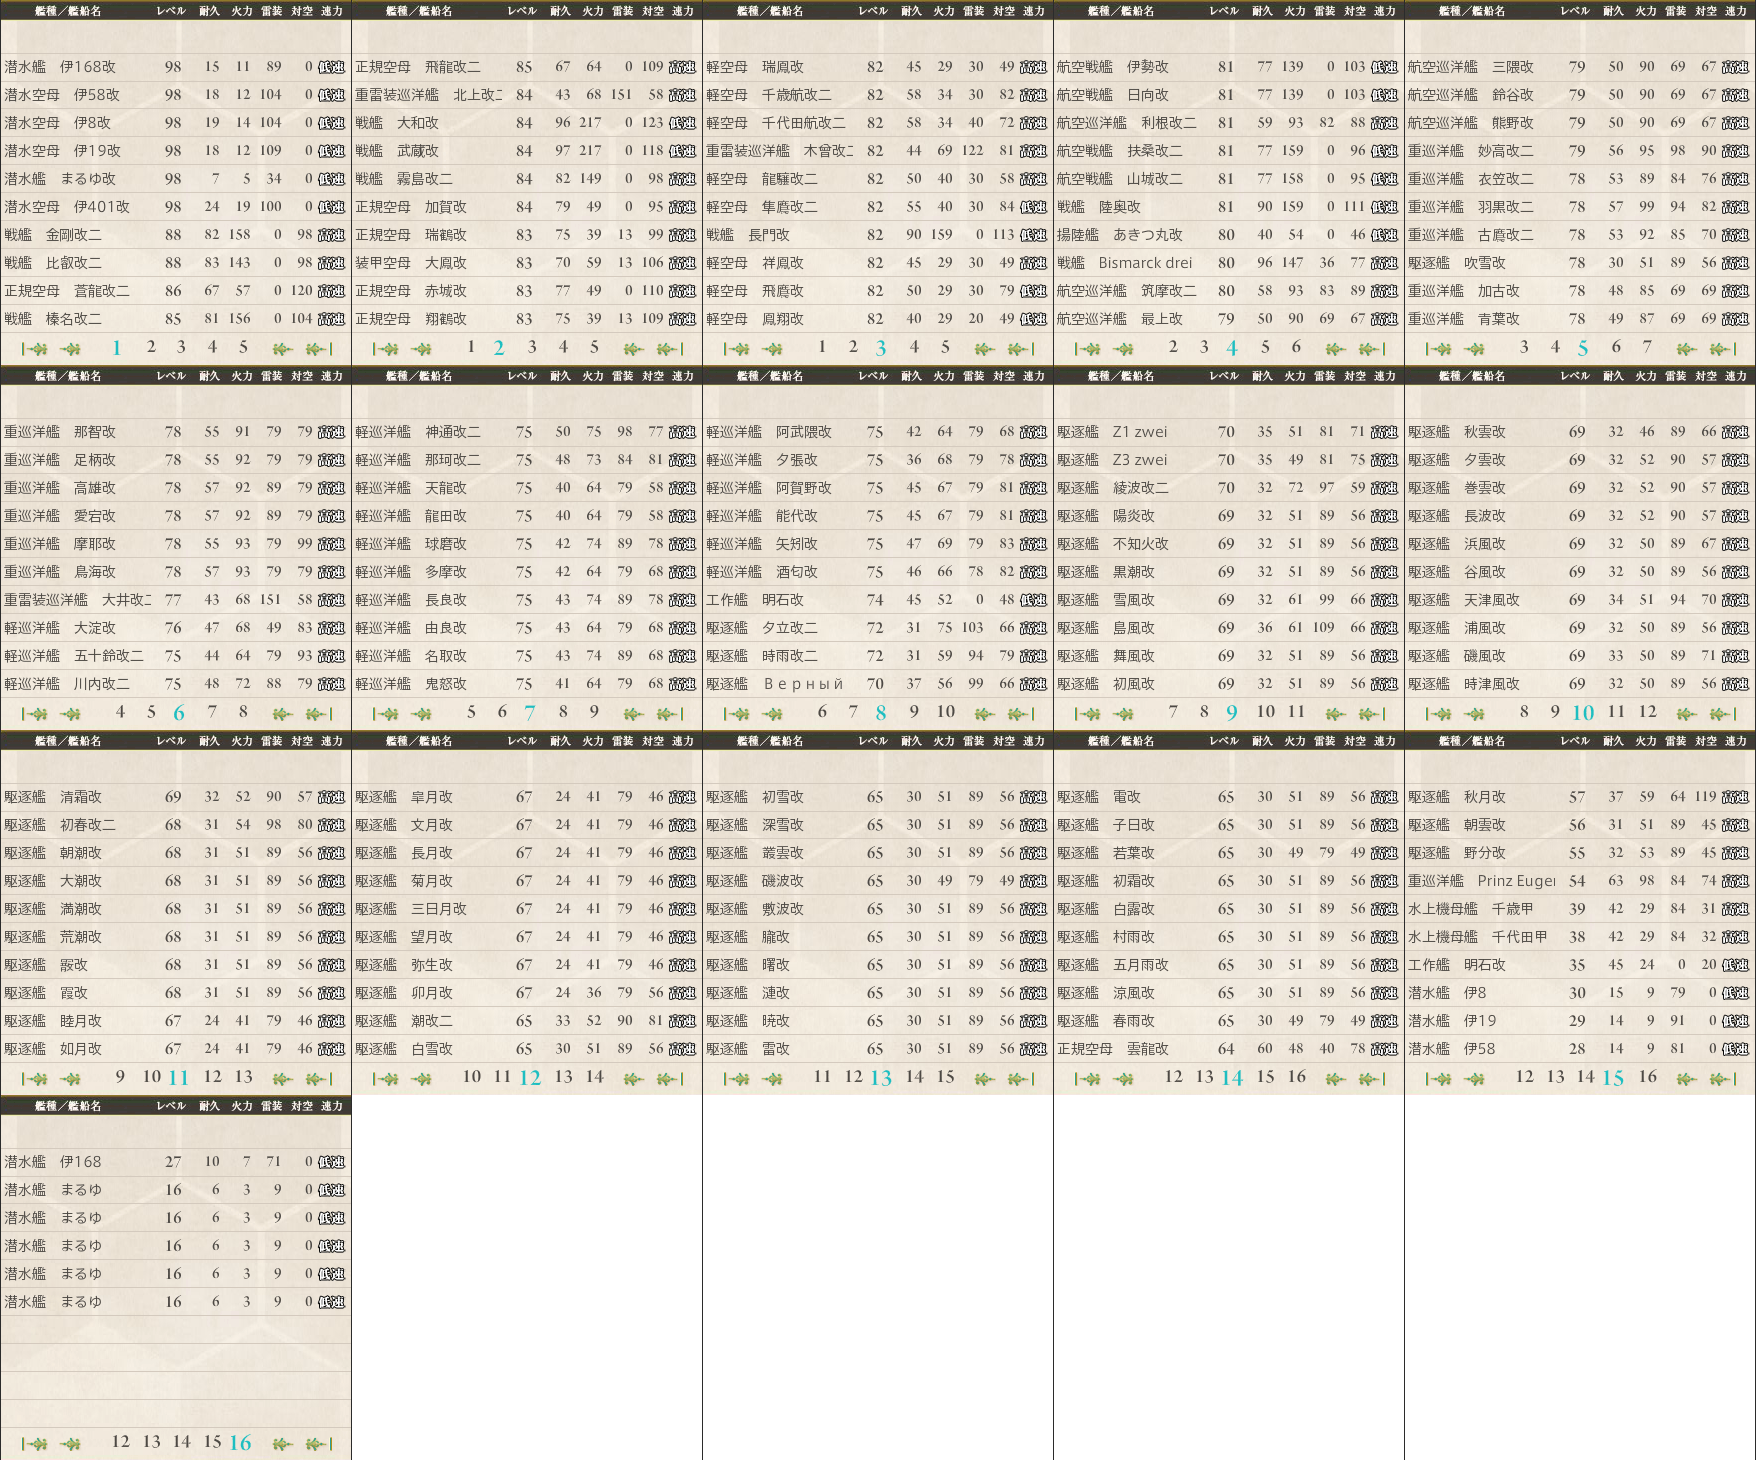 data.kancolle.levelsort.20141207.png